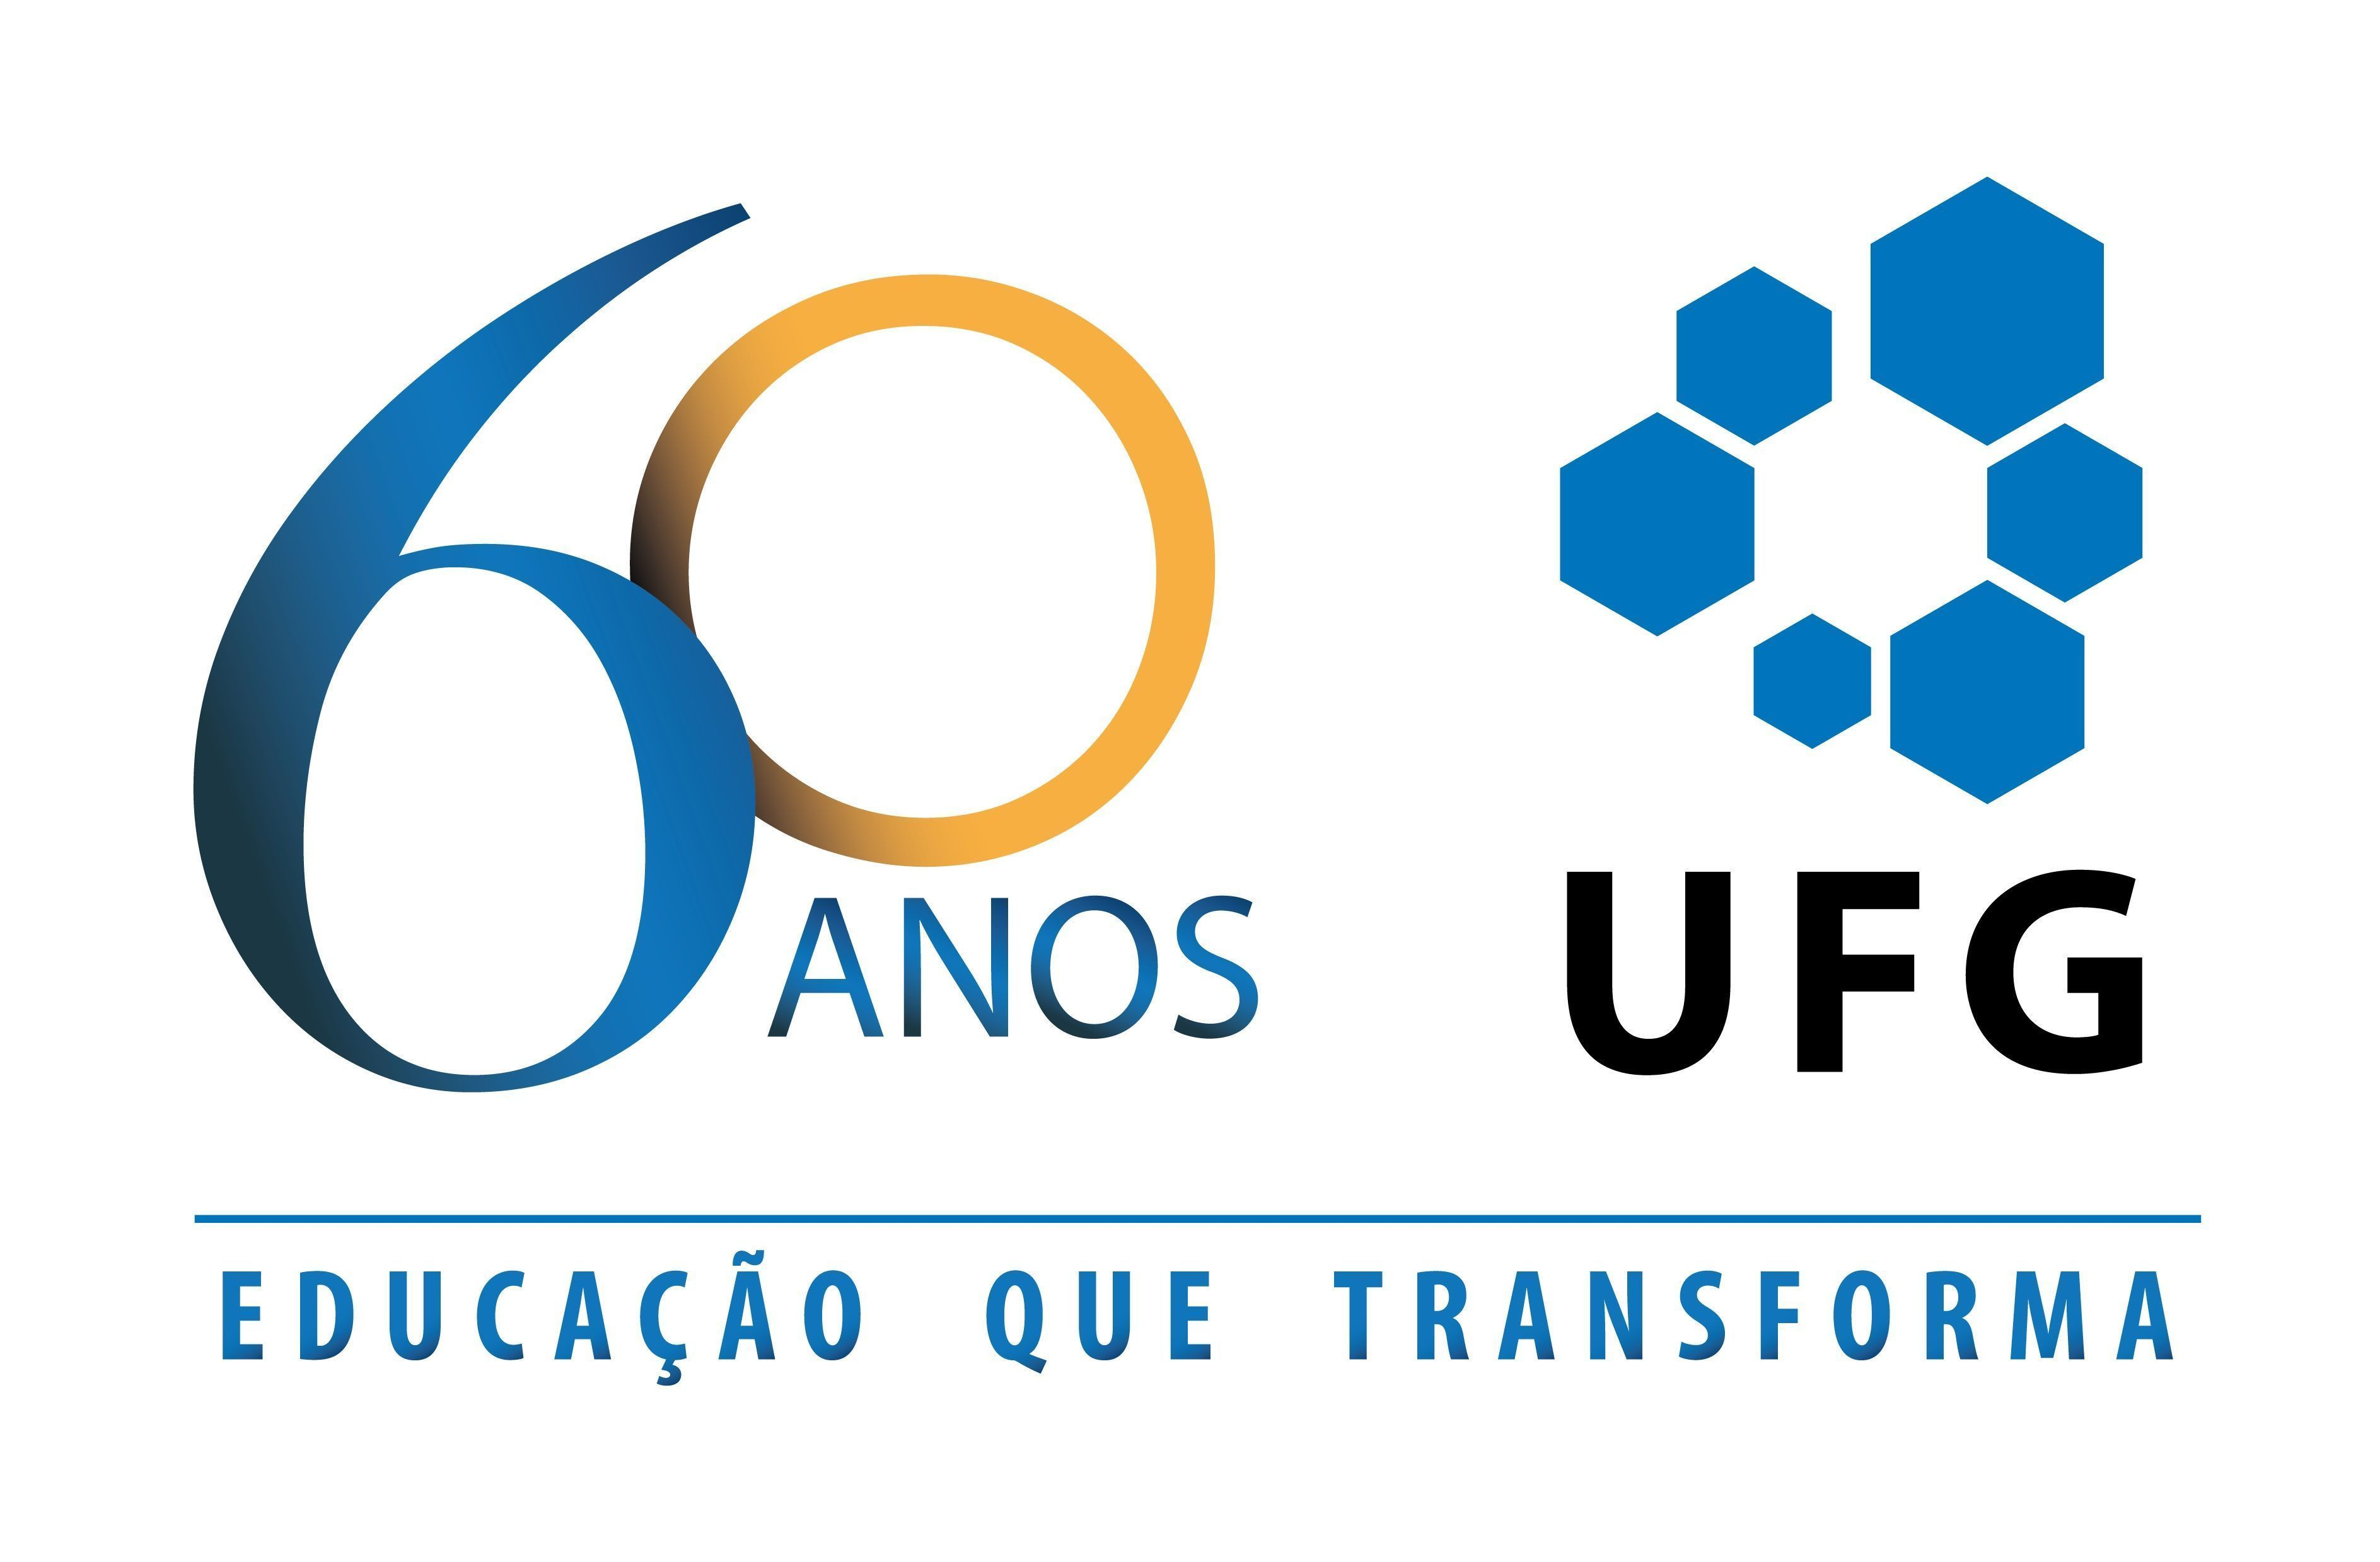 Selo_60_anos_UFG_colorido PNG